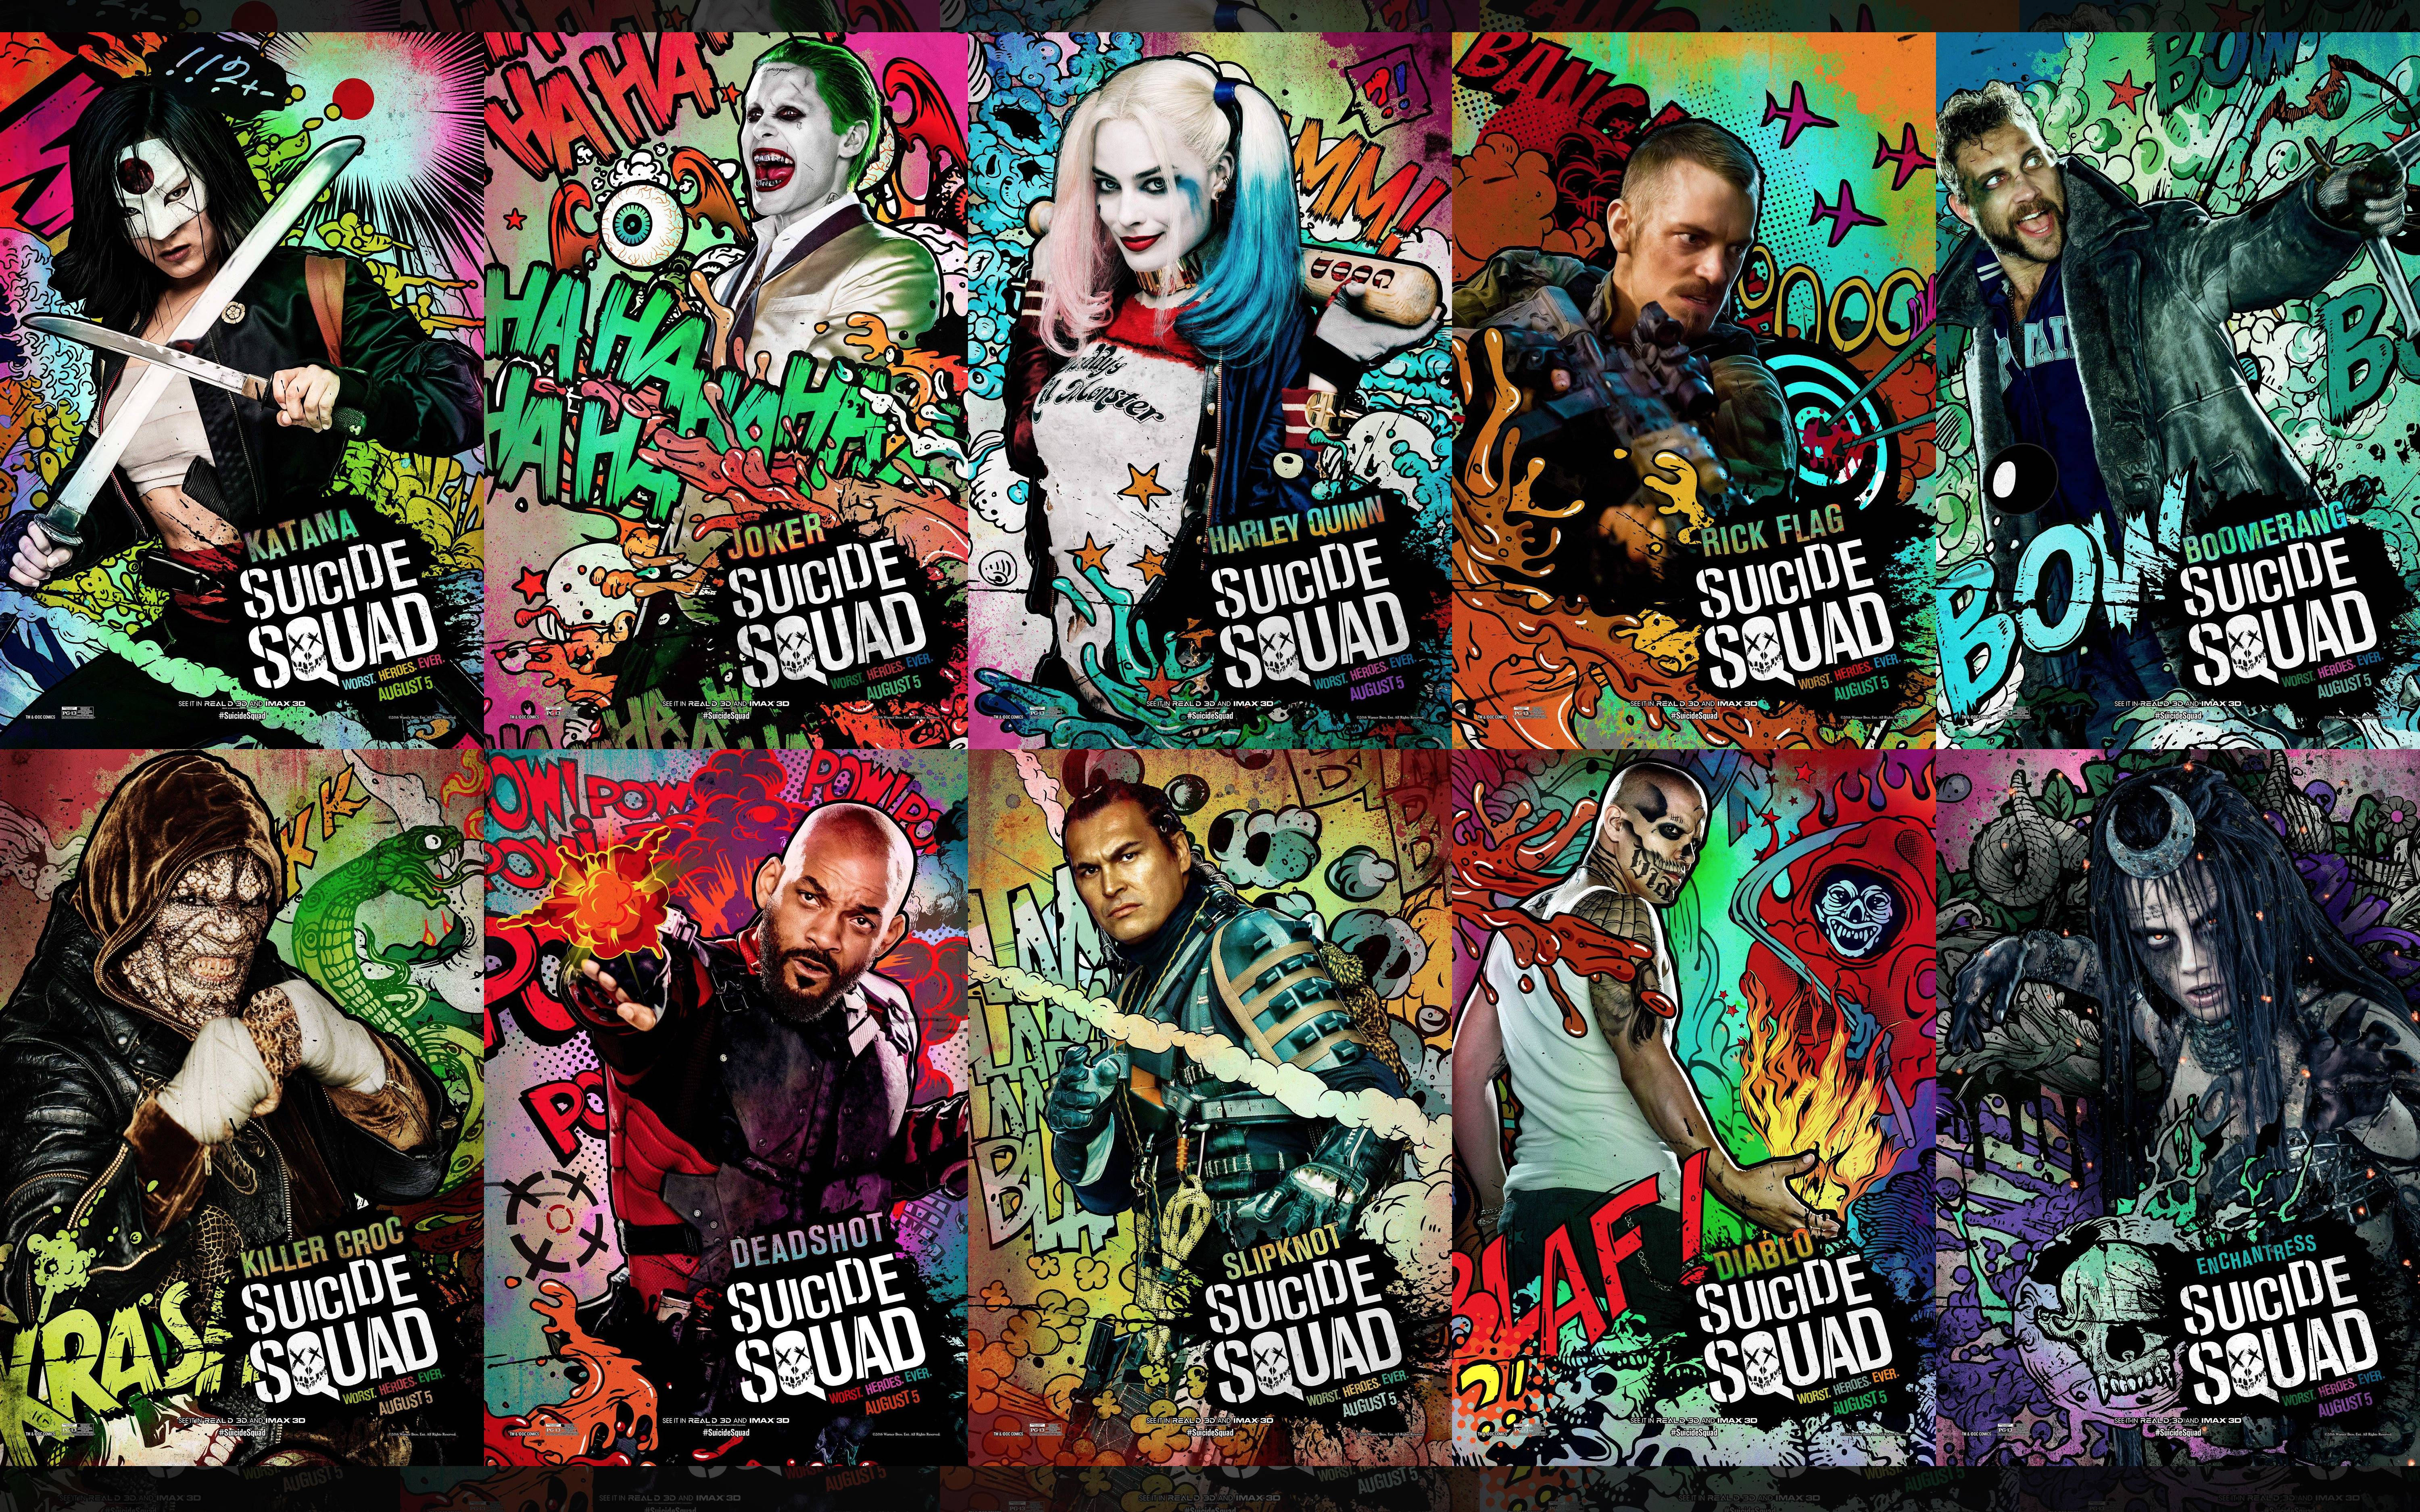 Suicide Squad Wallpapers 6000x3750 4A19AG5   4USkY 6000x3750